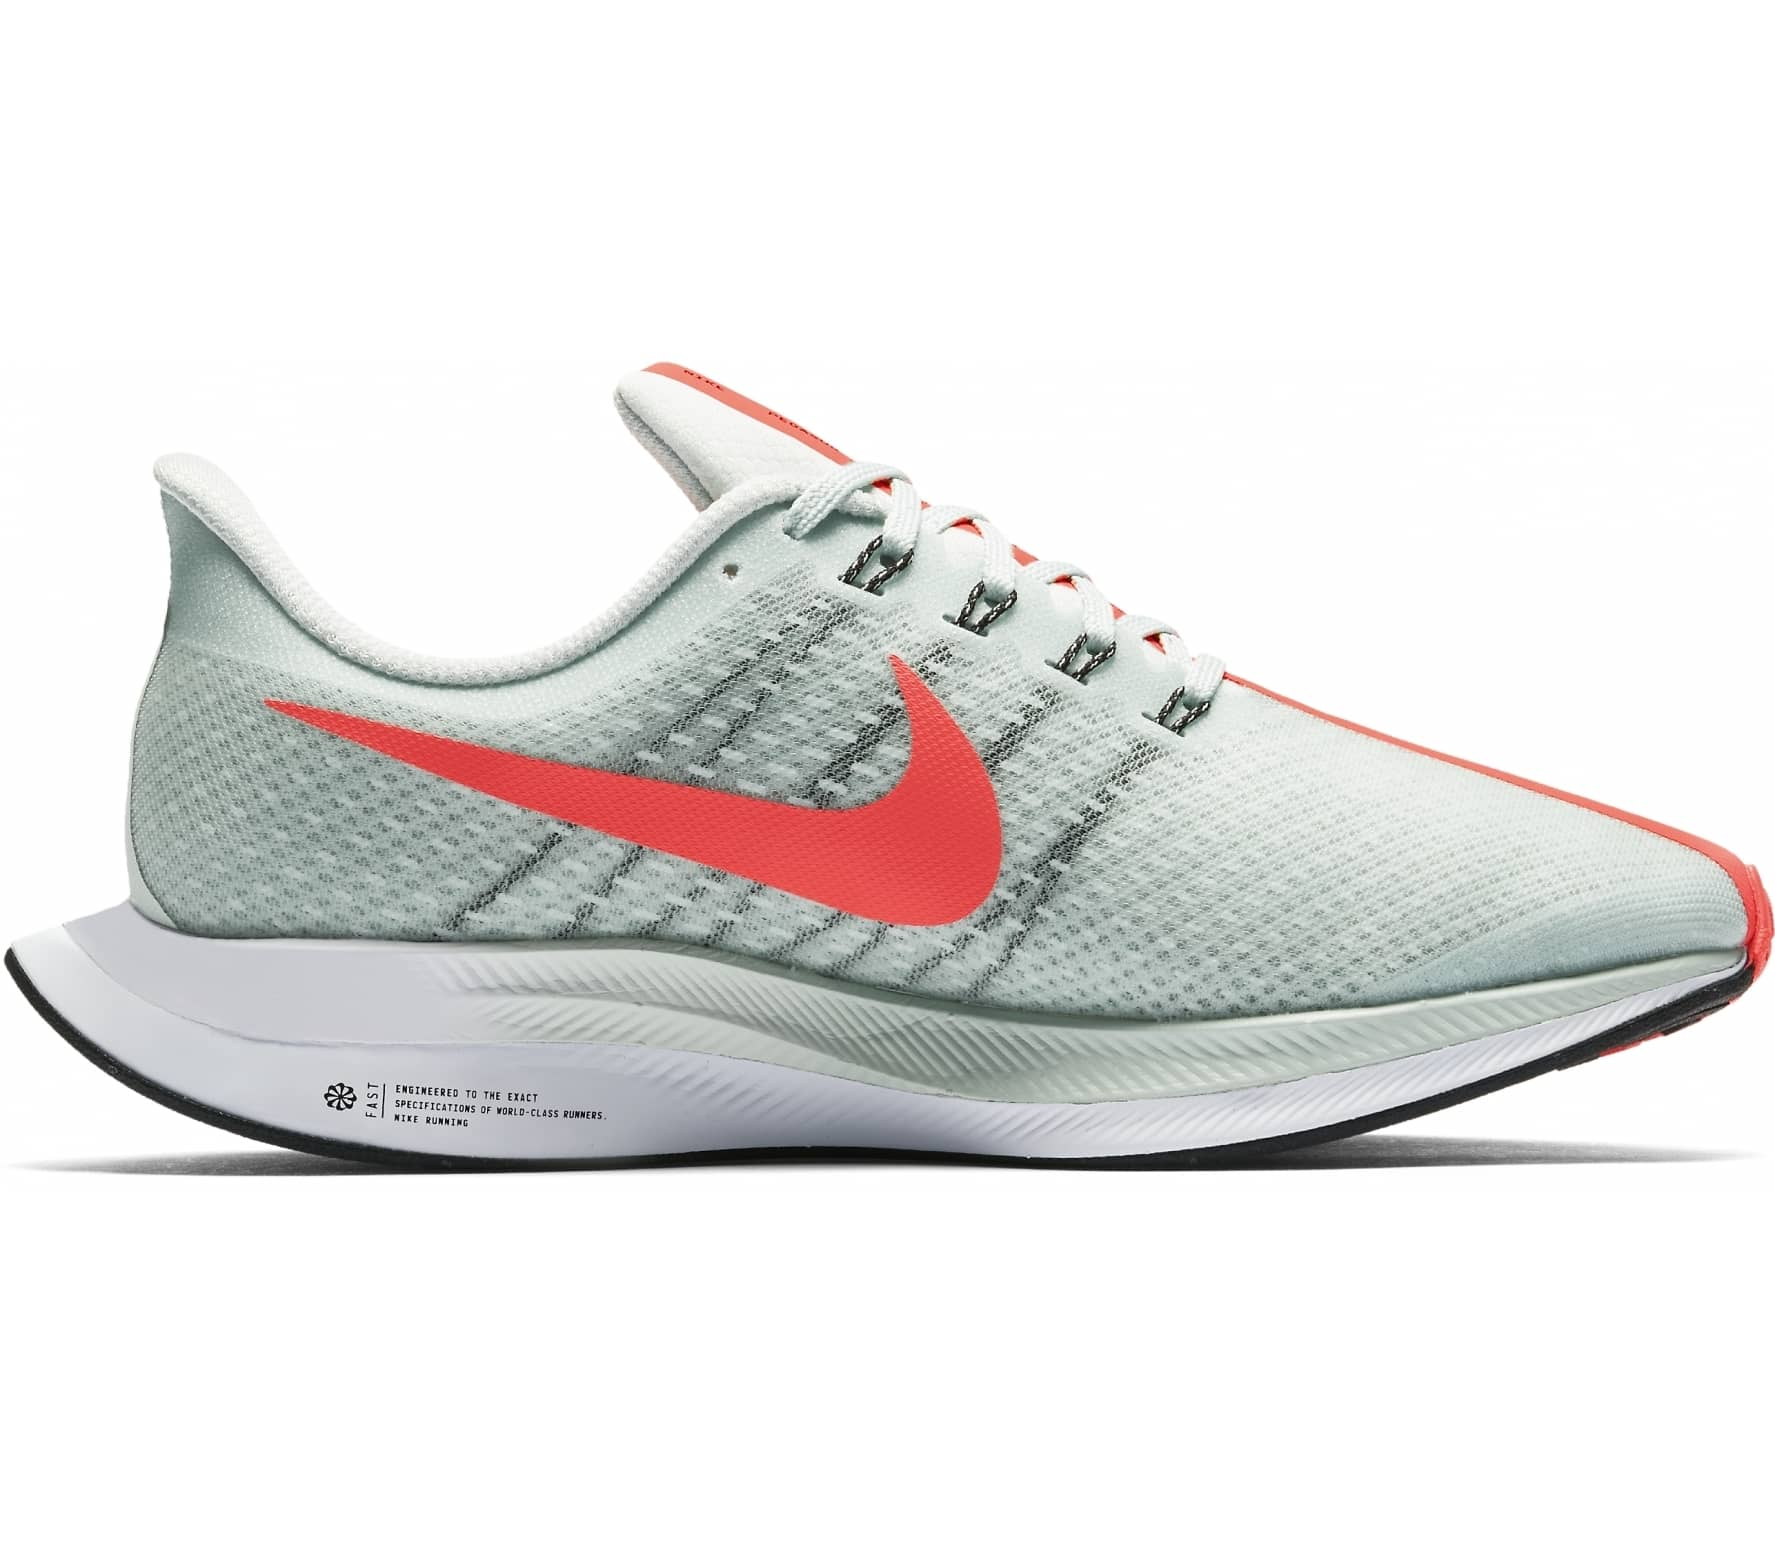 Nike - Zoom Pegasus 35 Turbo women's running shoes (grey)